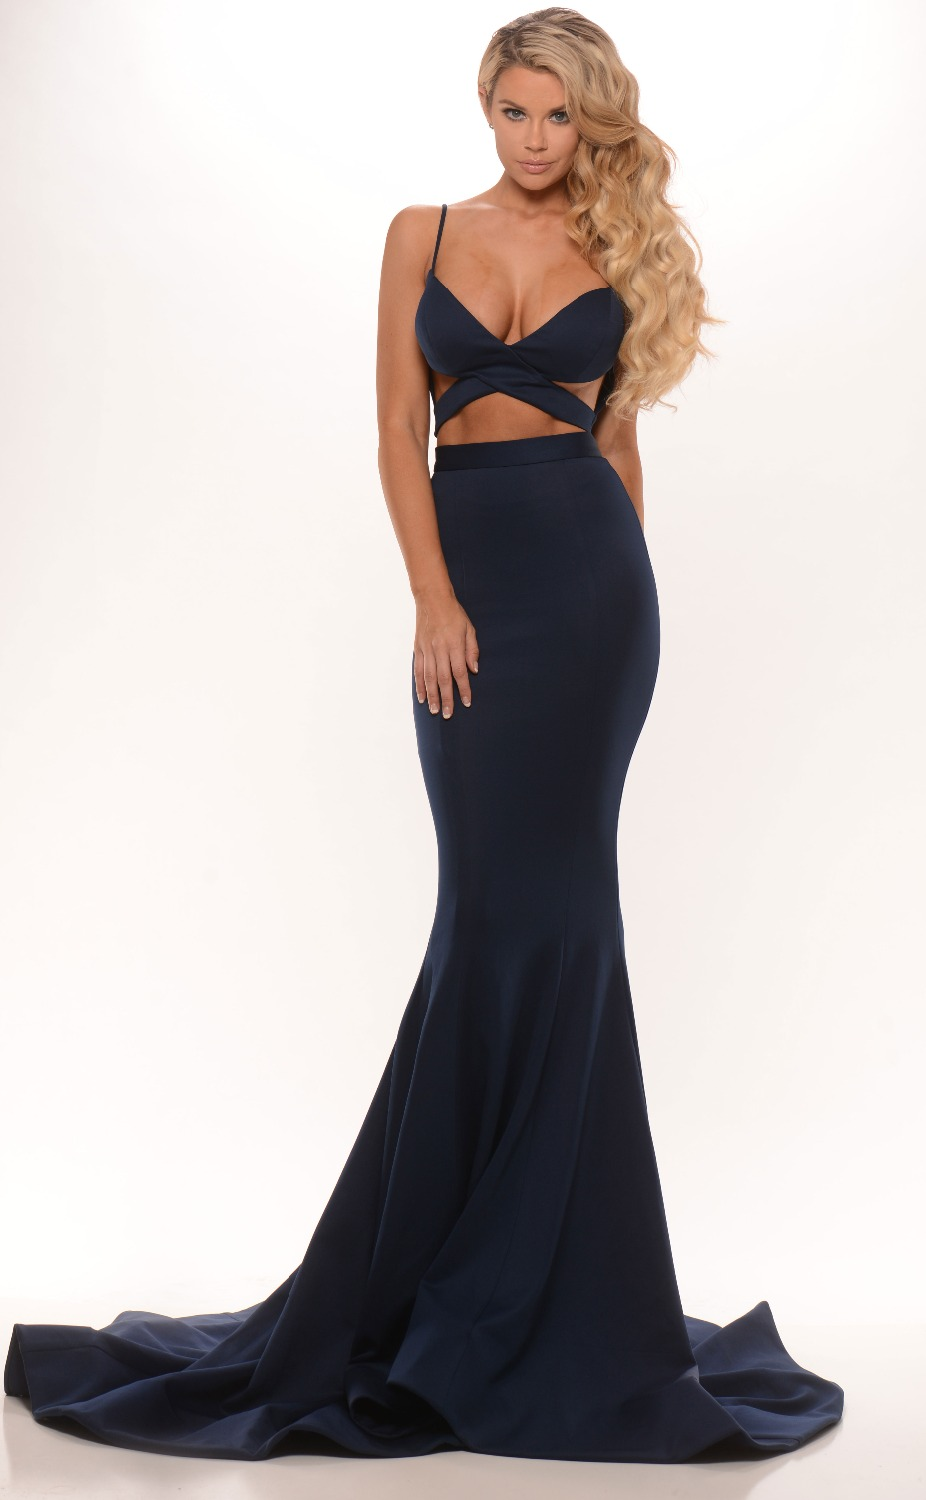 Sexy Big Fashion Bandage Bodycon Tall Women Two Piece Prom Party